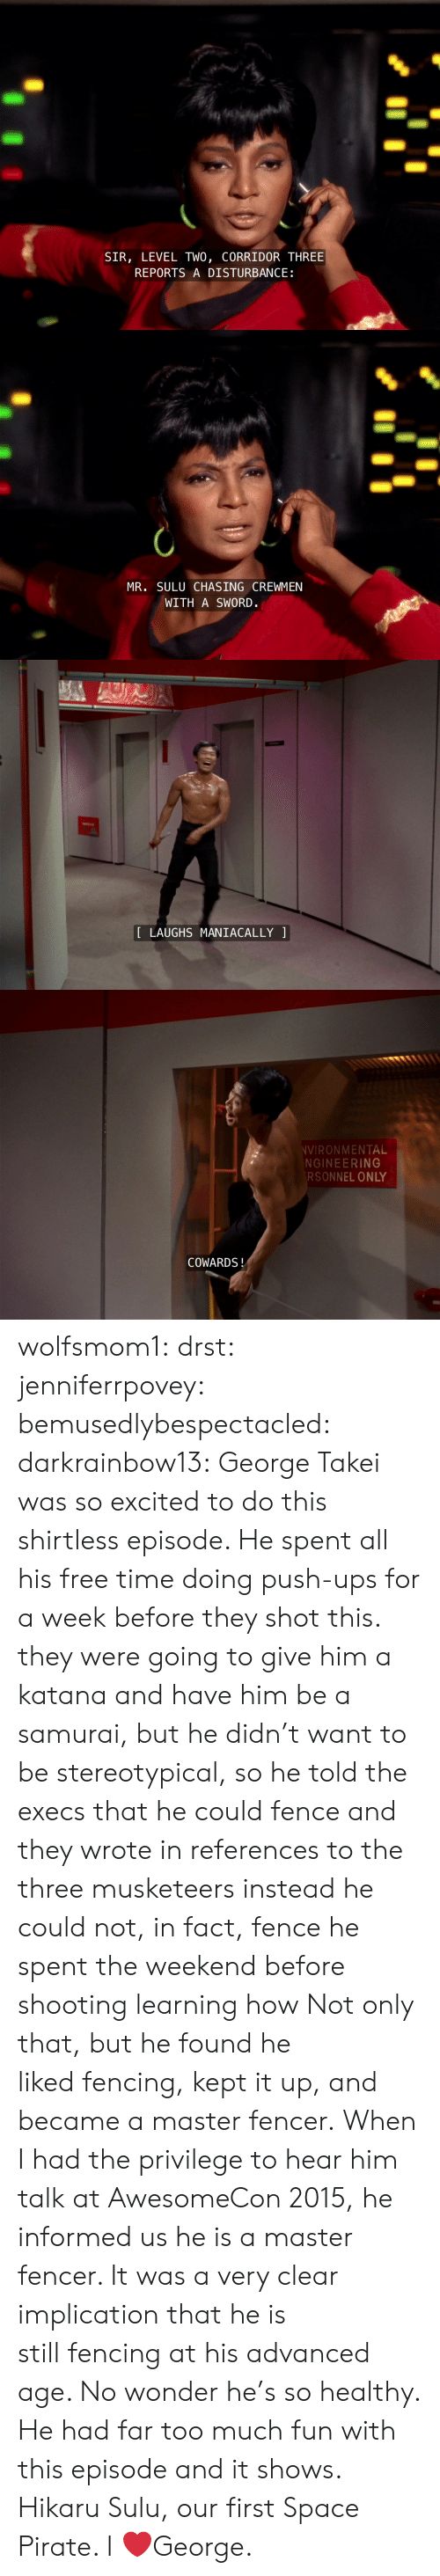 Samurai: SIR, LEVEL TWO, CORRIDOR THREE  REPORTS A DISTURBANCE   MR. SULU CHASING CREWMEN  WITH A SWORD.   LAUGHS MANIACALLY   VIRONMENTAL  NGINEERING  RSONNEL ONLY  COWARDS! wolfsmom1:  drst:   jenniferrpovey:  bemusedlybespectacled:  darkrainbow13:  George Takei was so excited to do this shirtless episode. He spent all his free time doing push-ups for a week before they shot this.  they were going to give him a katana and have him be a samurai, but he didn't want to be stereotypical, so he told the execs that he could fence and they wrote in references to the three musketeers instead he could not, in fact, fence he spent the weekend before shooting learning how  Not only that, but he found he likedfencing, kept it up, and became a master fencer. When I had the privilege to hear him talk at AwesomeCon 2015, he informed us he isa master fencer. It was a very clear implication that he is stillfencing at his advanced age. No wonder he's so healthy. He had fartoo much fun with this episode and it shows.   Hikaru Sulu, our first Space Pirate.    I ❤️George.